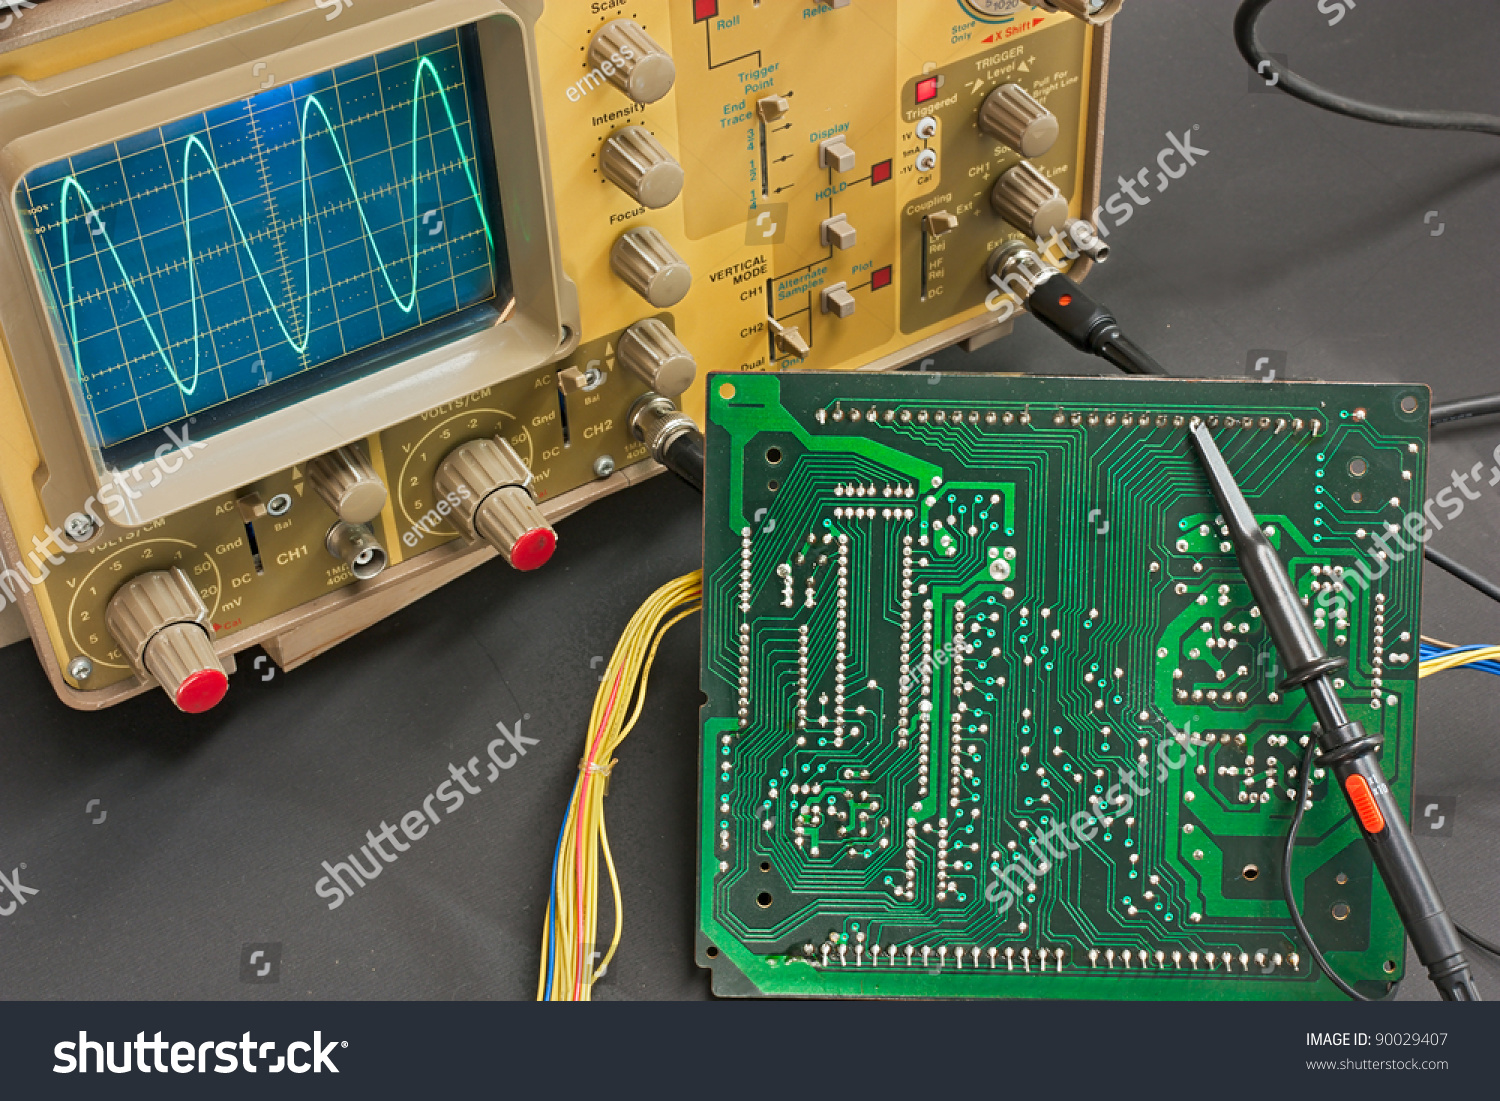 Electronic Lab Instruments : Test electronic board oscilloscope instruments